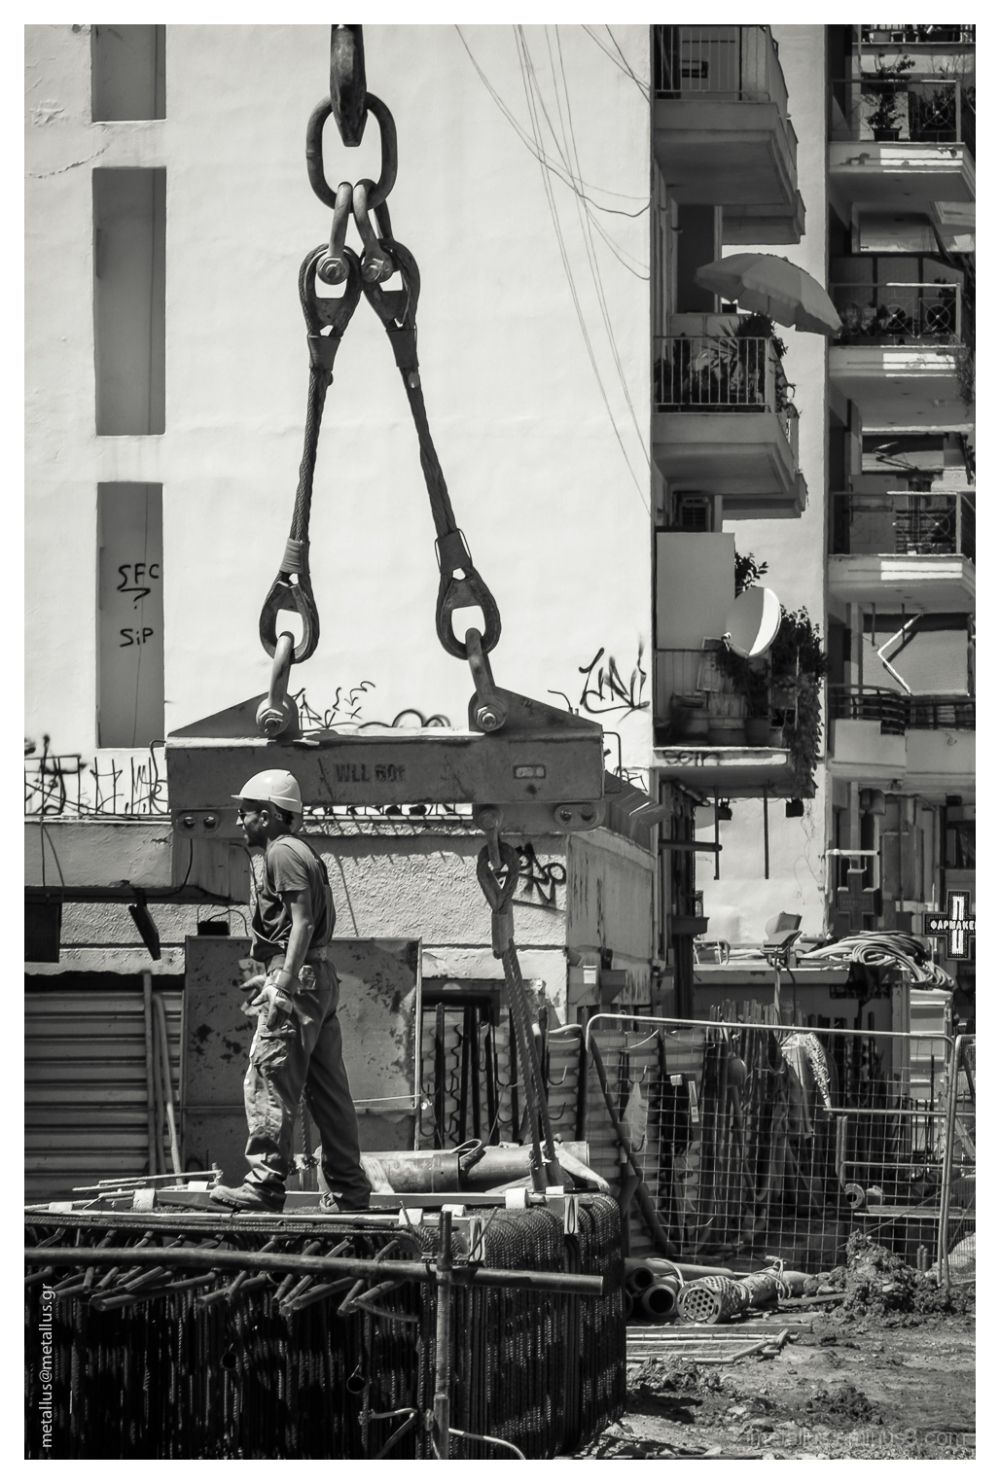 Metro construction site, Thessaloniki, Greece 2013